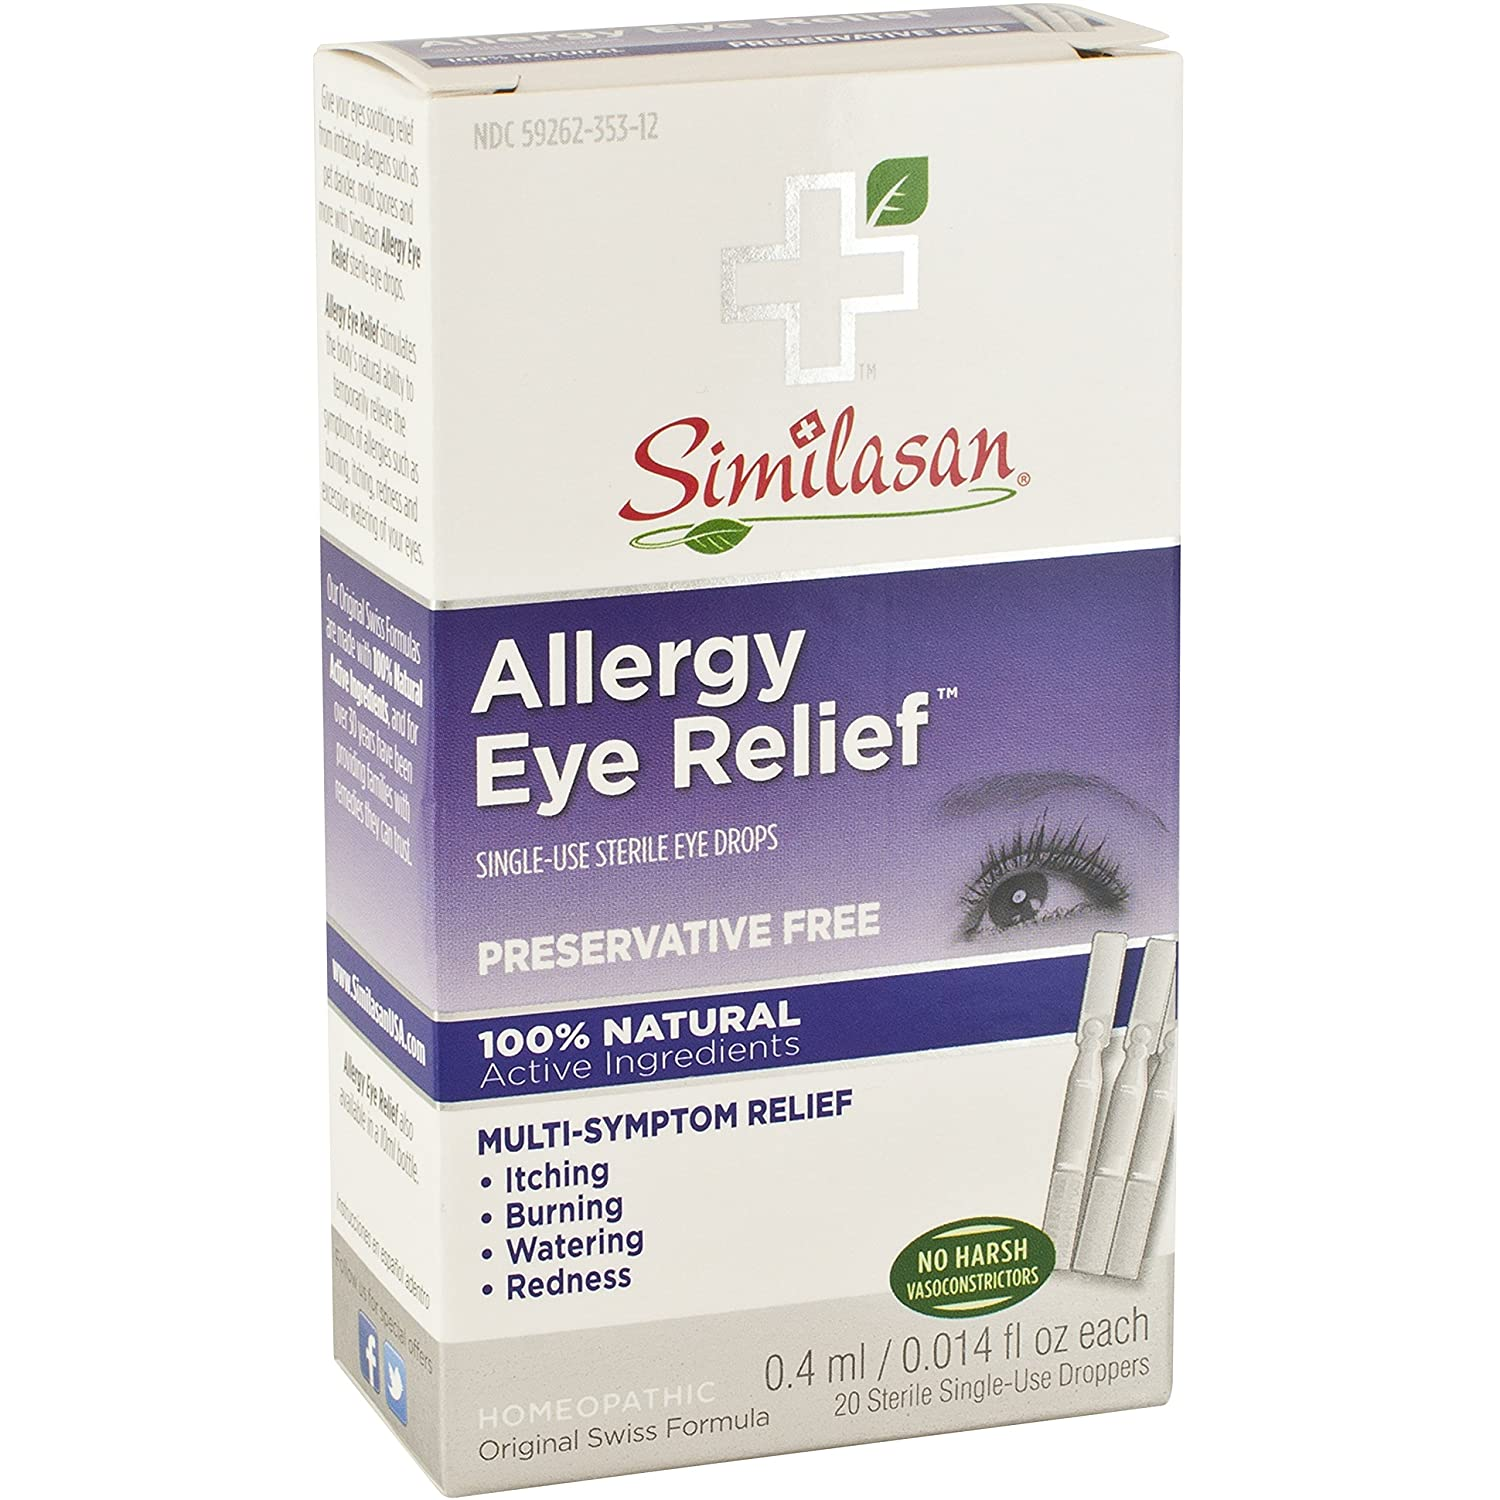 Amazon.com: Similasan Allergy Eye Relief, Preservative Free, Single-Use Dropper, 9ml: Health & Personal Care